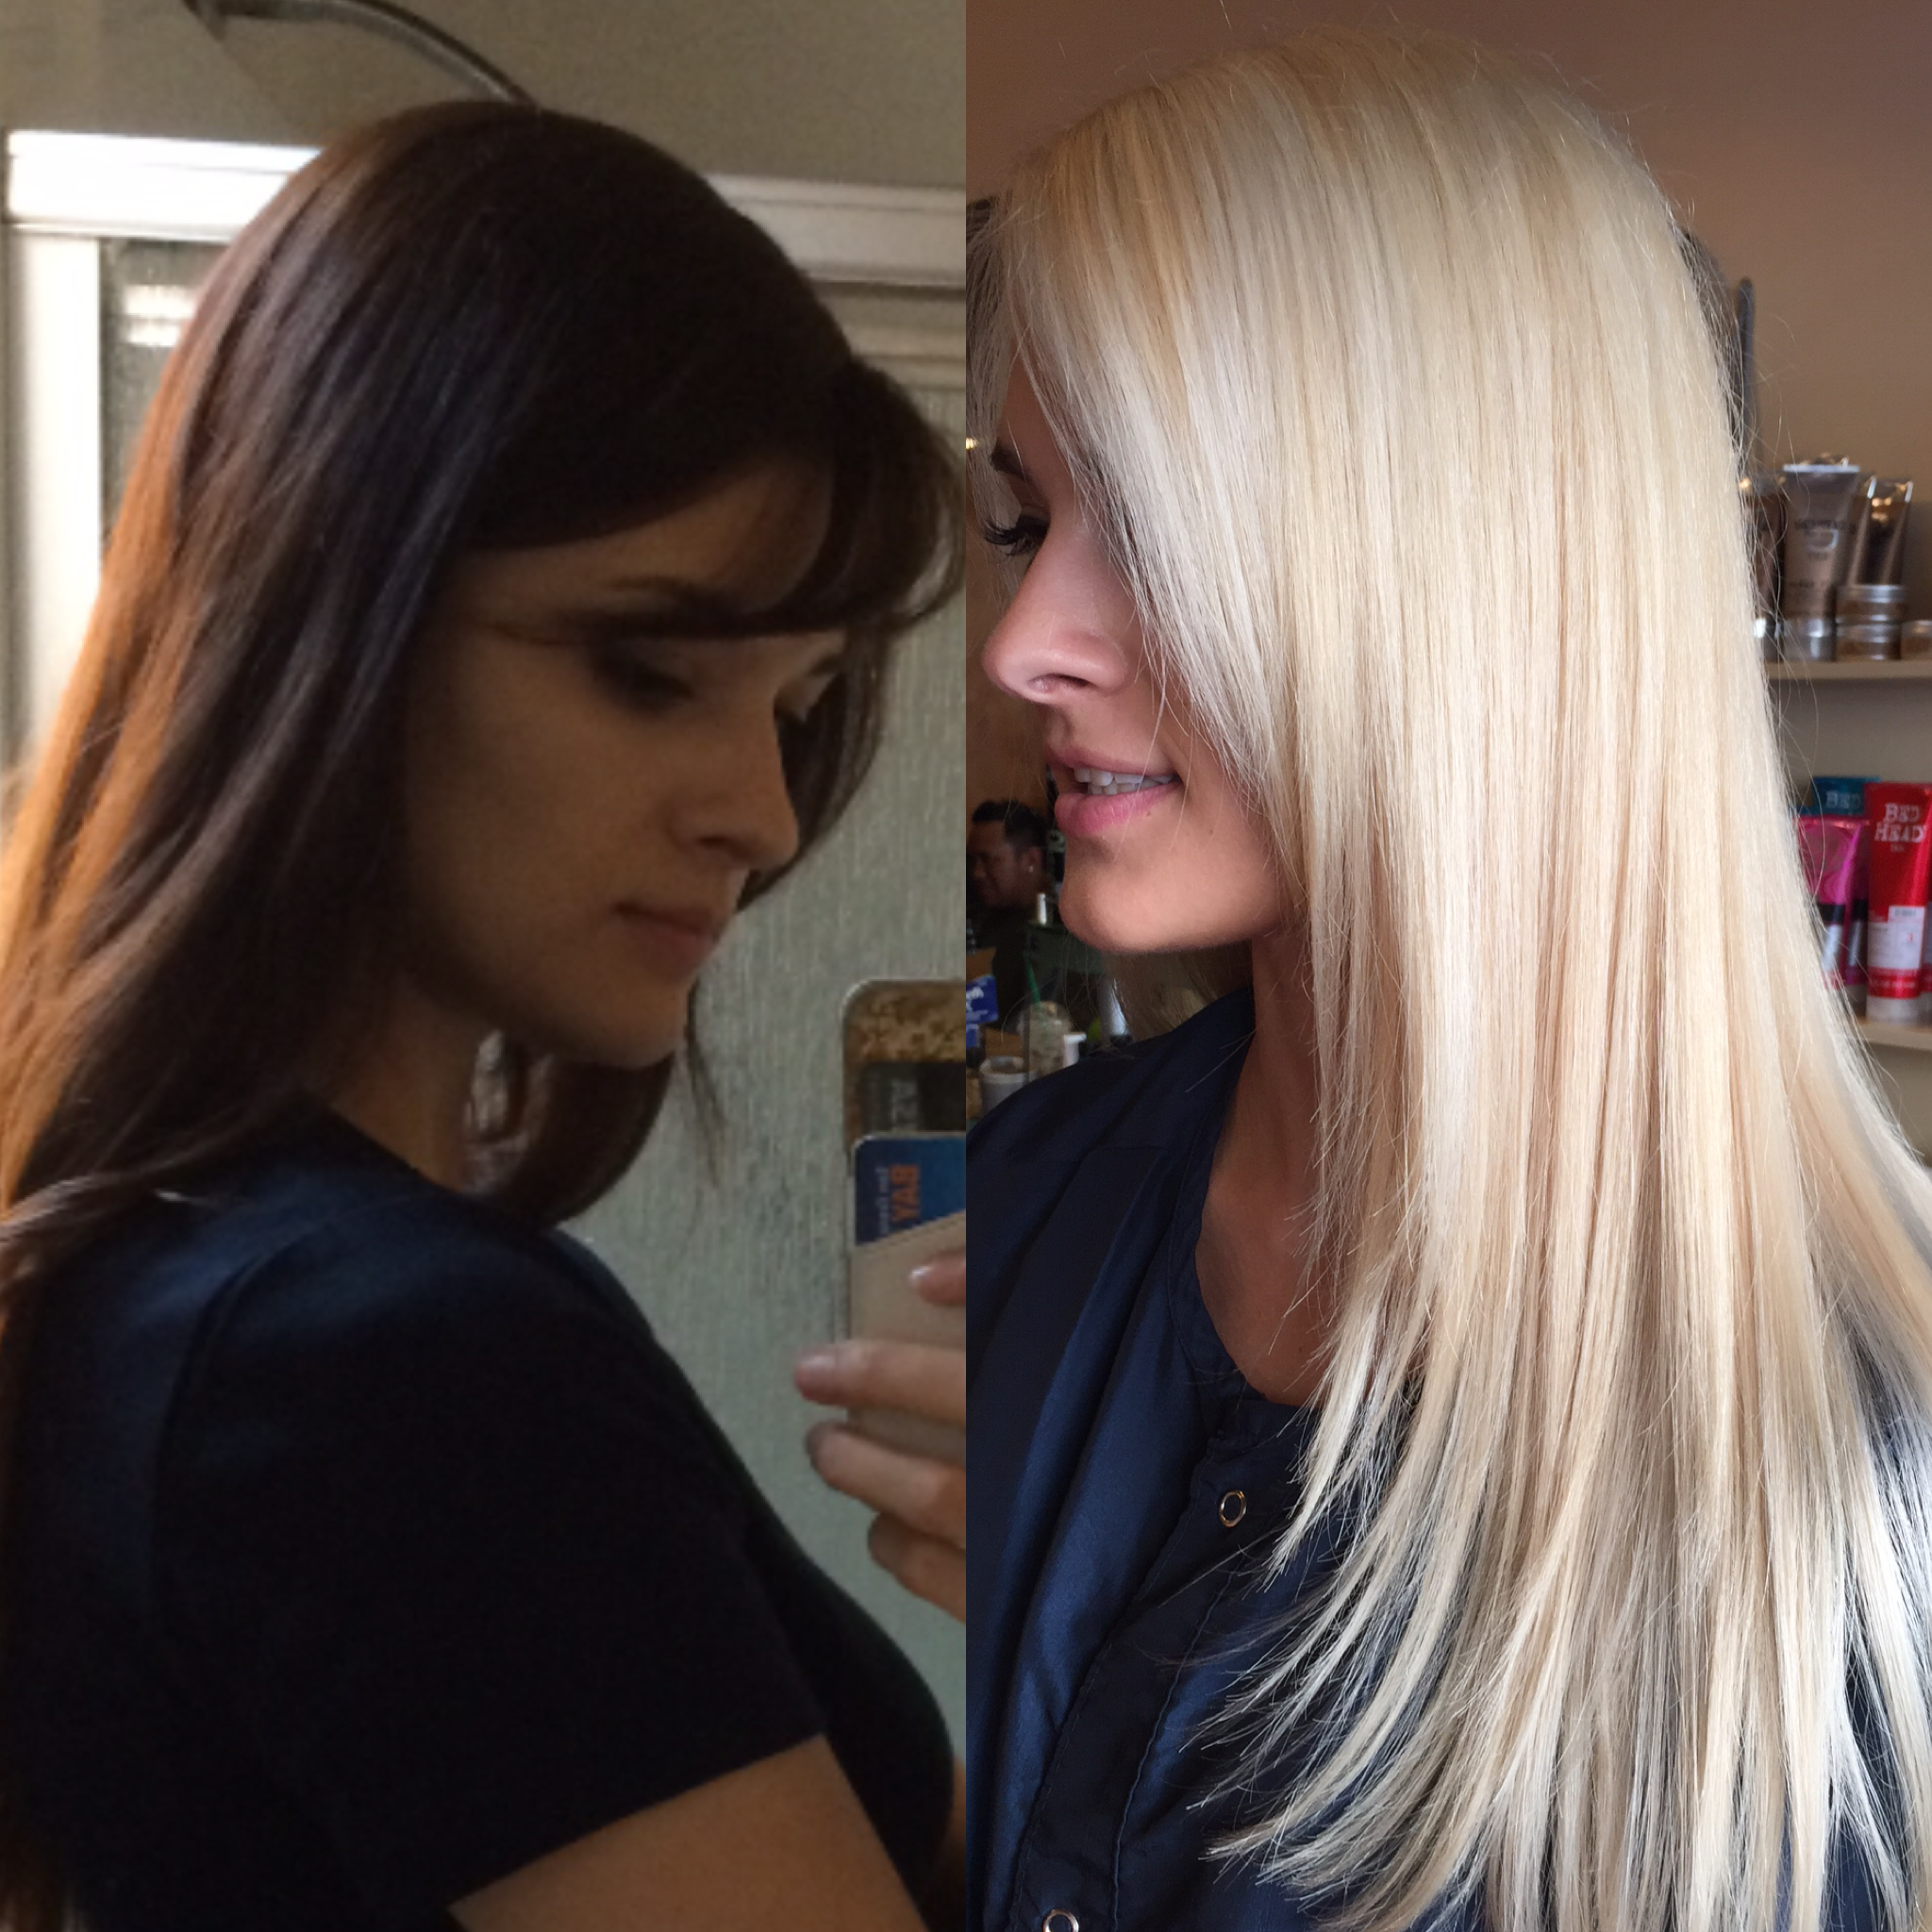 Going Bright Blonde: Consultation and Formula